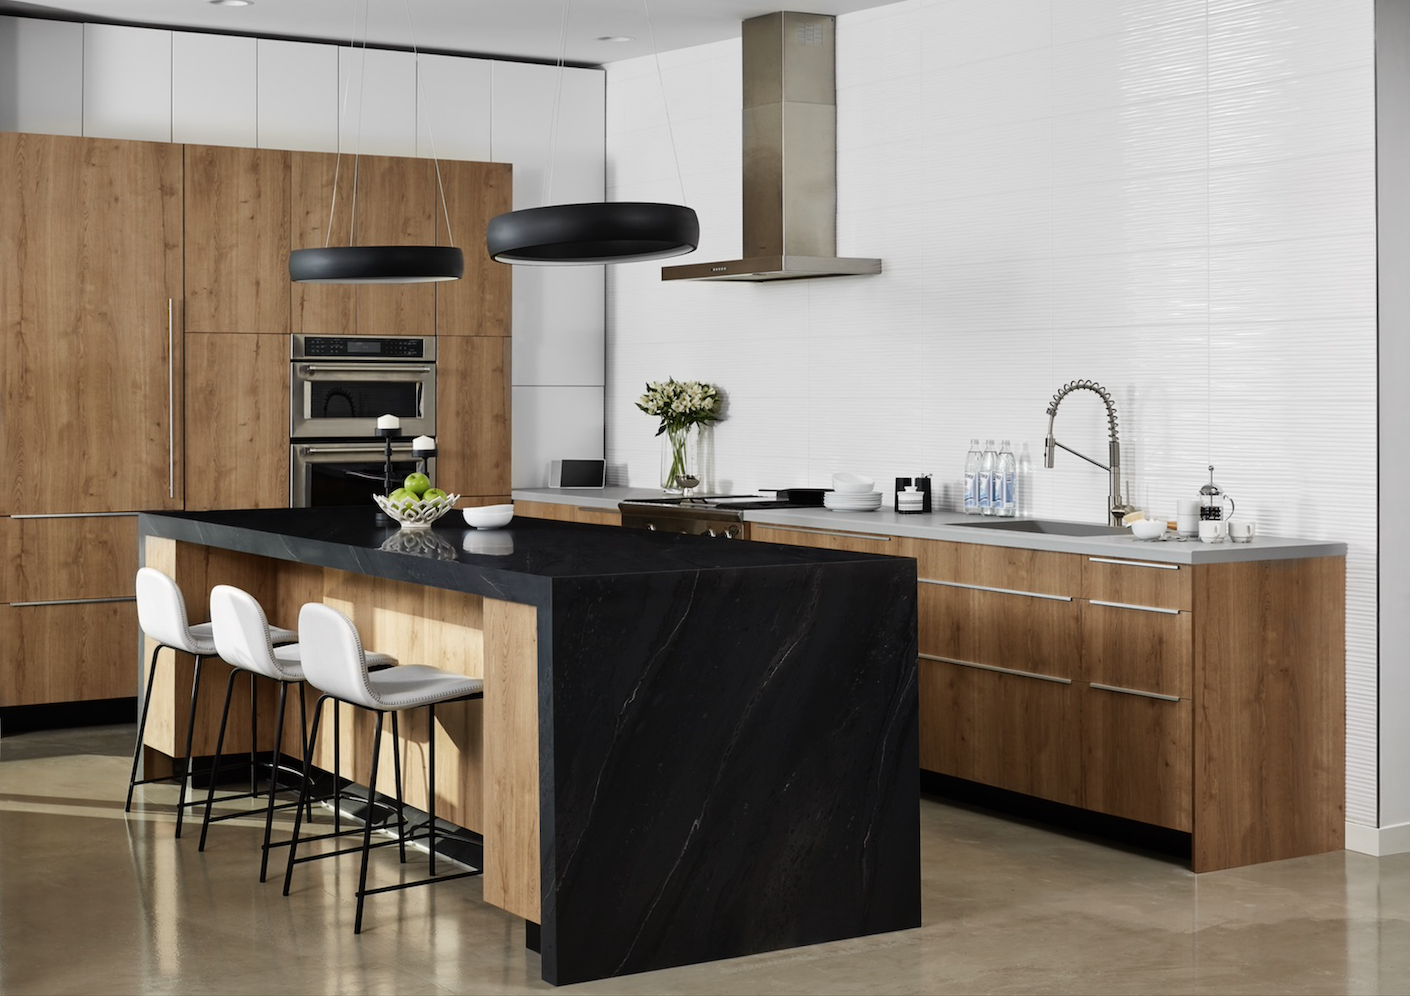 5 Surface Trends Designers Love—And How to Get the Look for Less